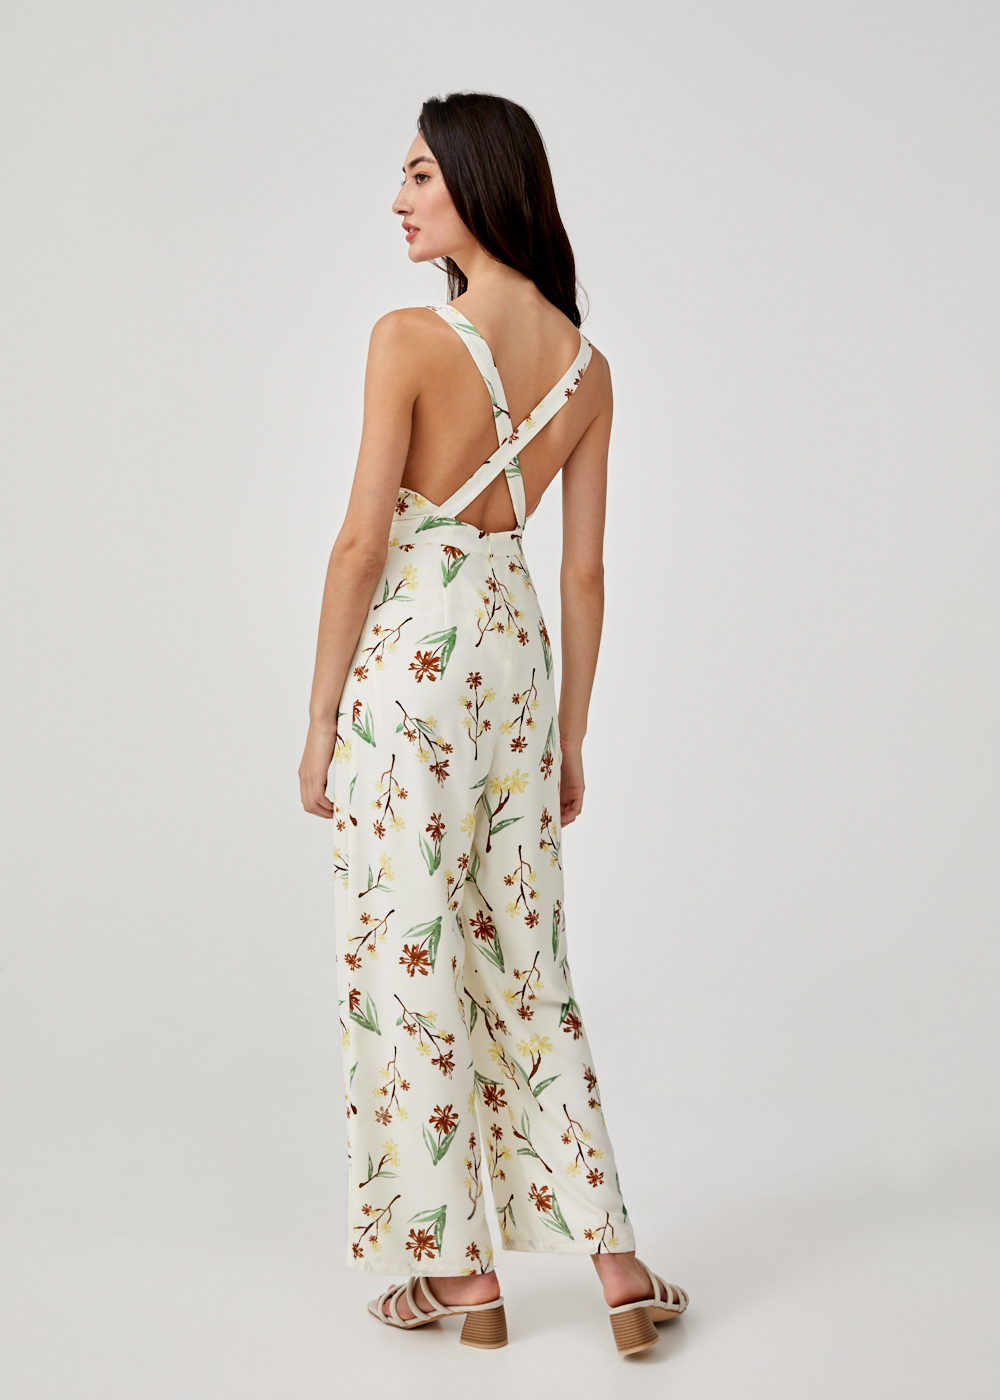 Iolande Cross Back Jumpsuit in Springtime Tisane